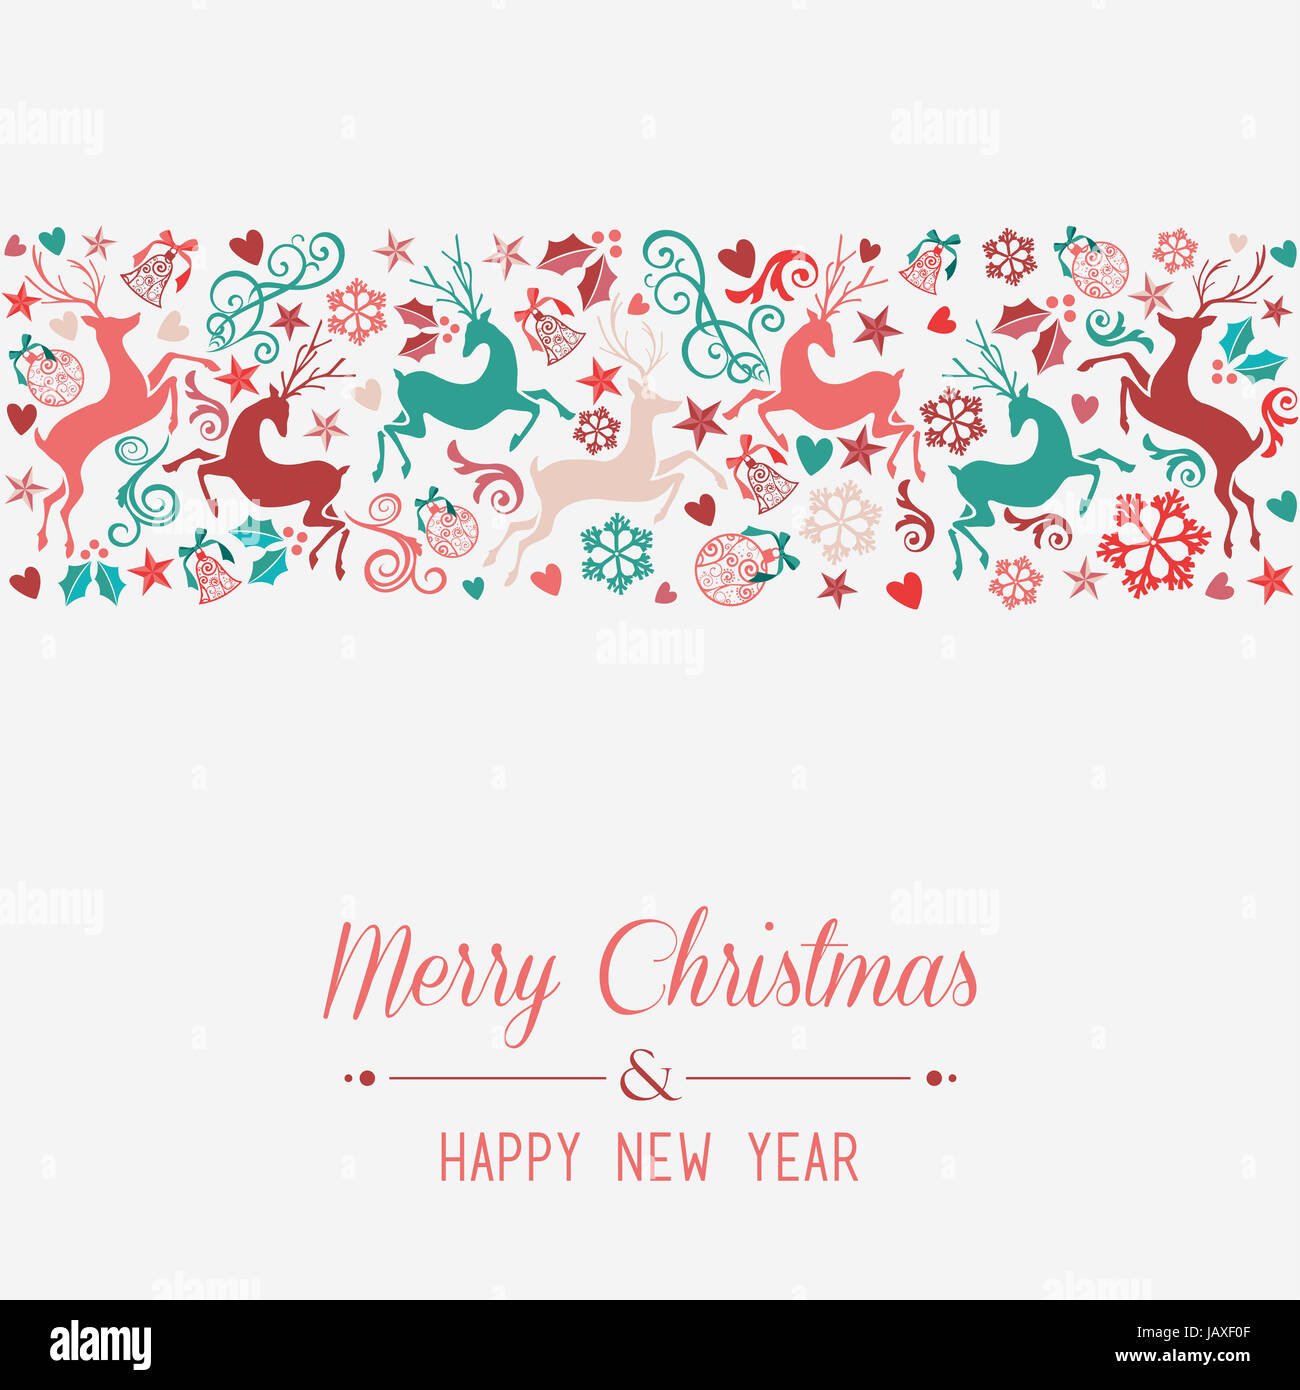 merry christmas and happy new year banner greeting card background eps10 vector file organized in layers for easy editing